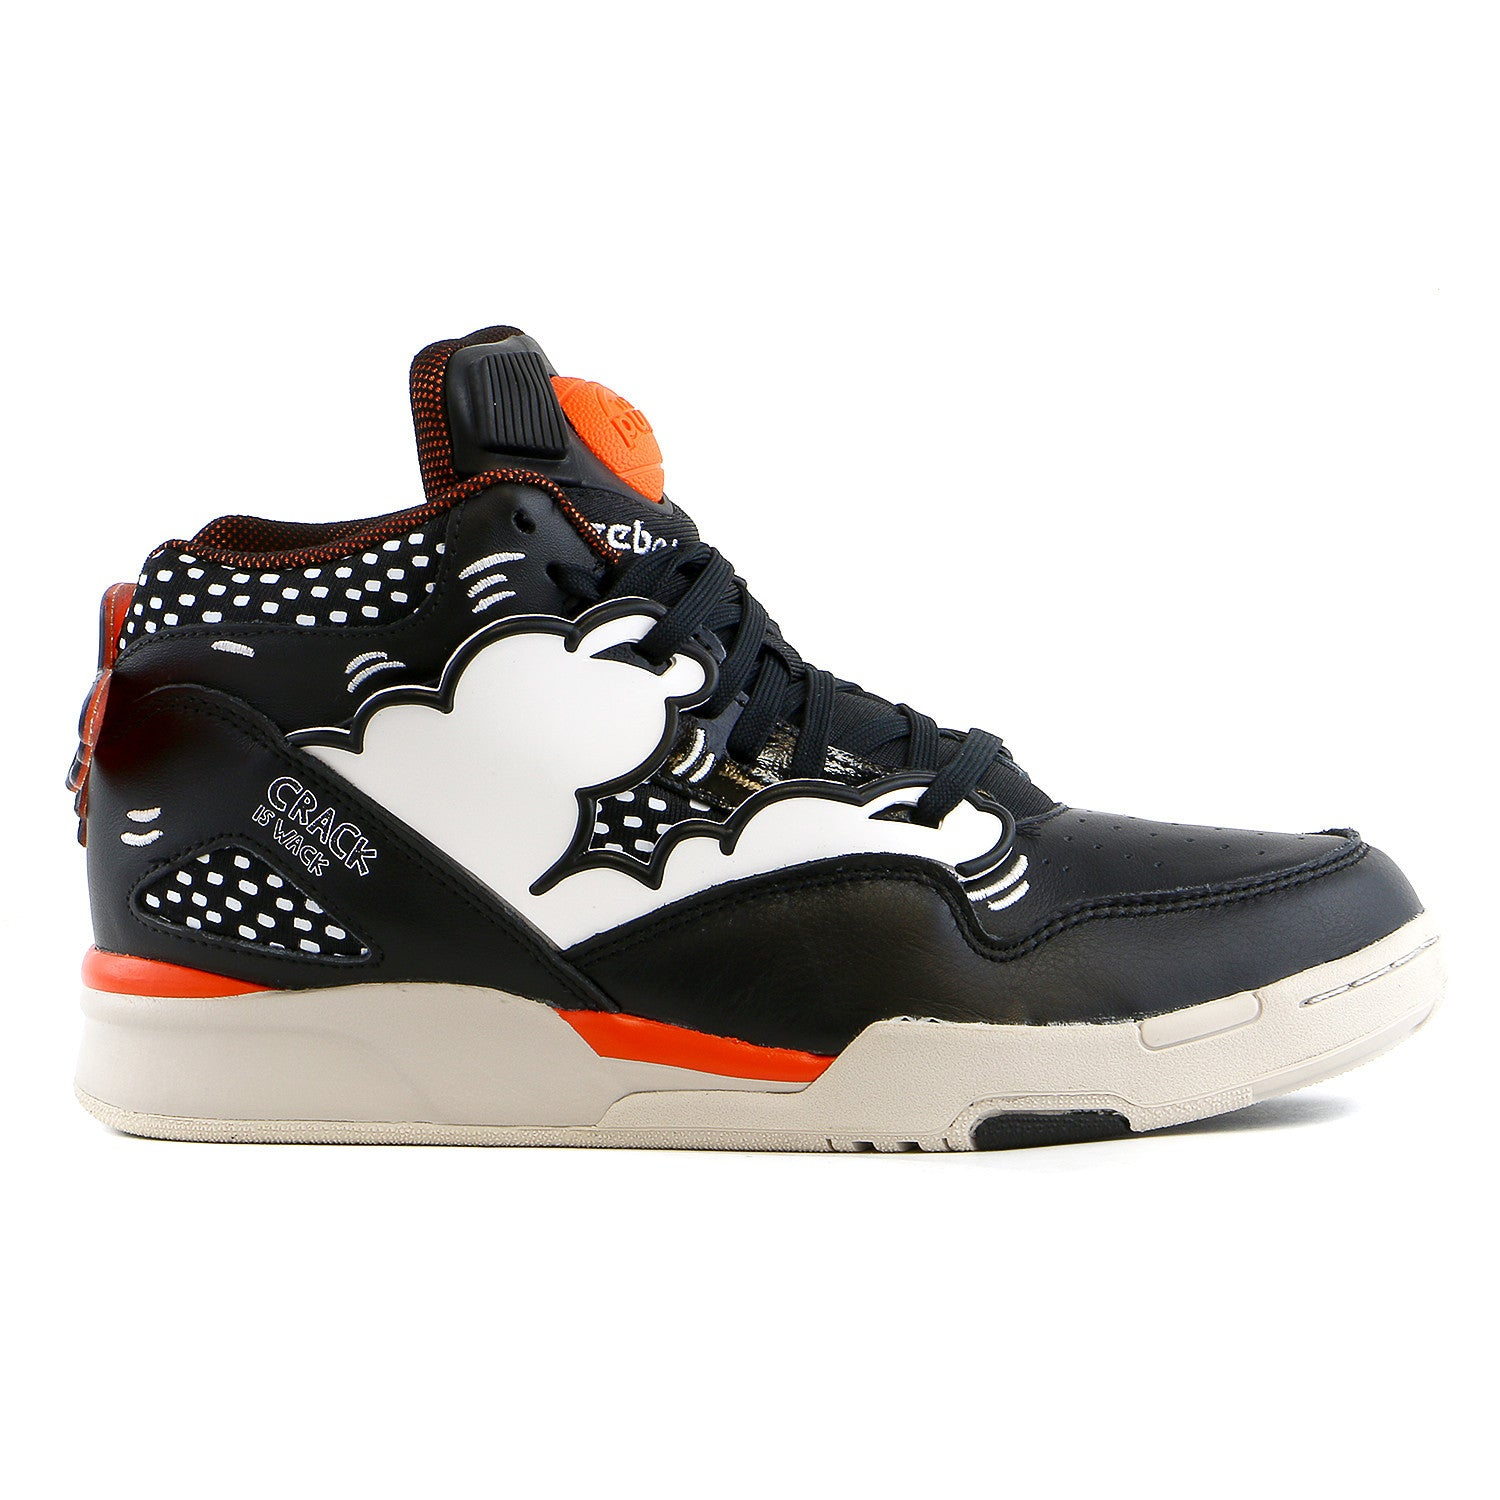 2e6c77da58f Reebok Omni Lite Keith Haring Basketball Fashion Sneaker Shoe - Black  -  Shoplifestyle